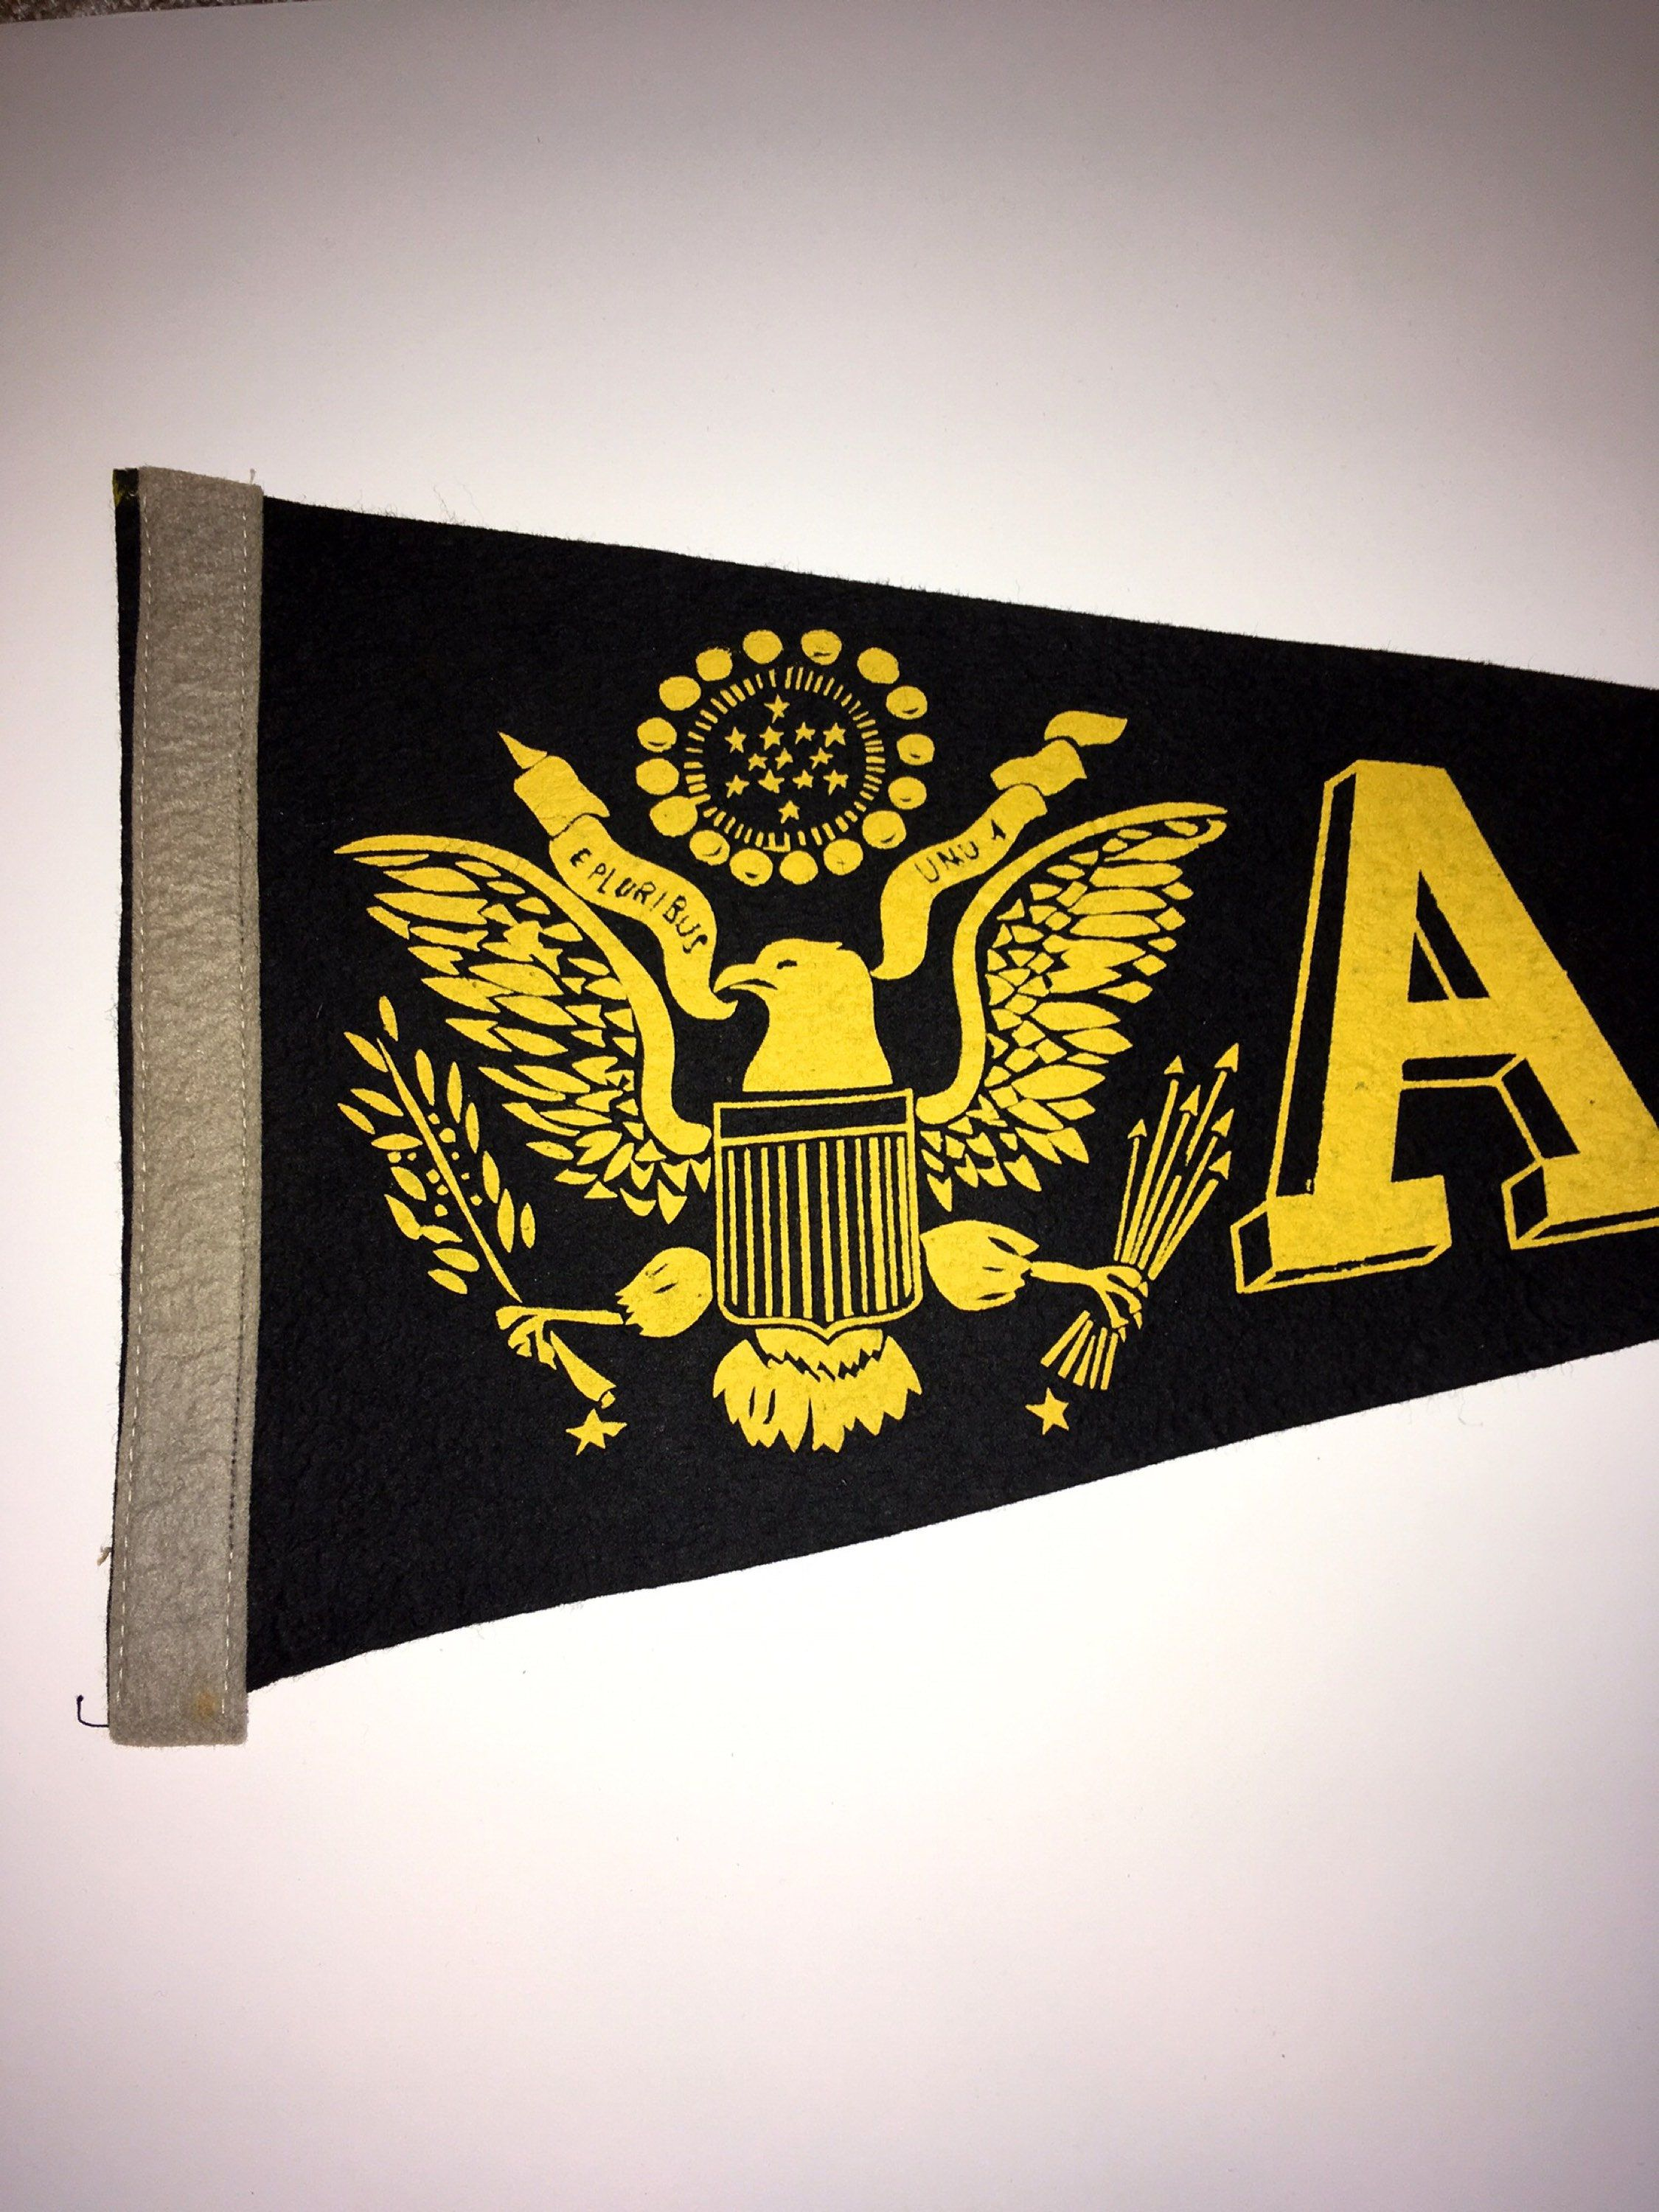 Vintage army pennant football felt school pennant flag ss